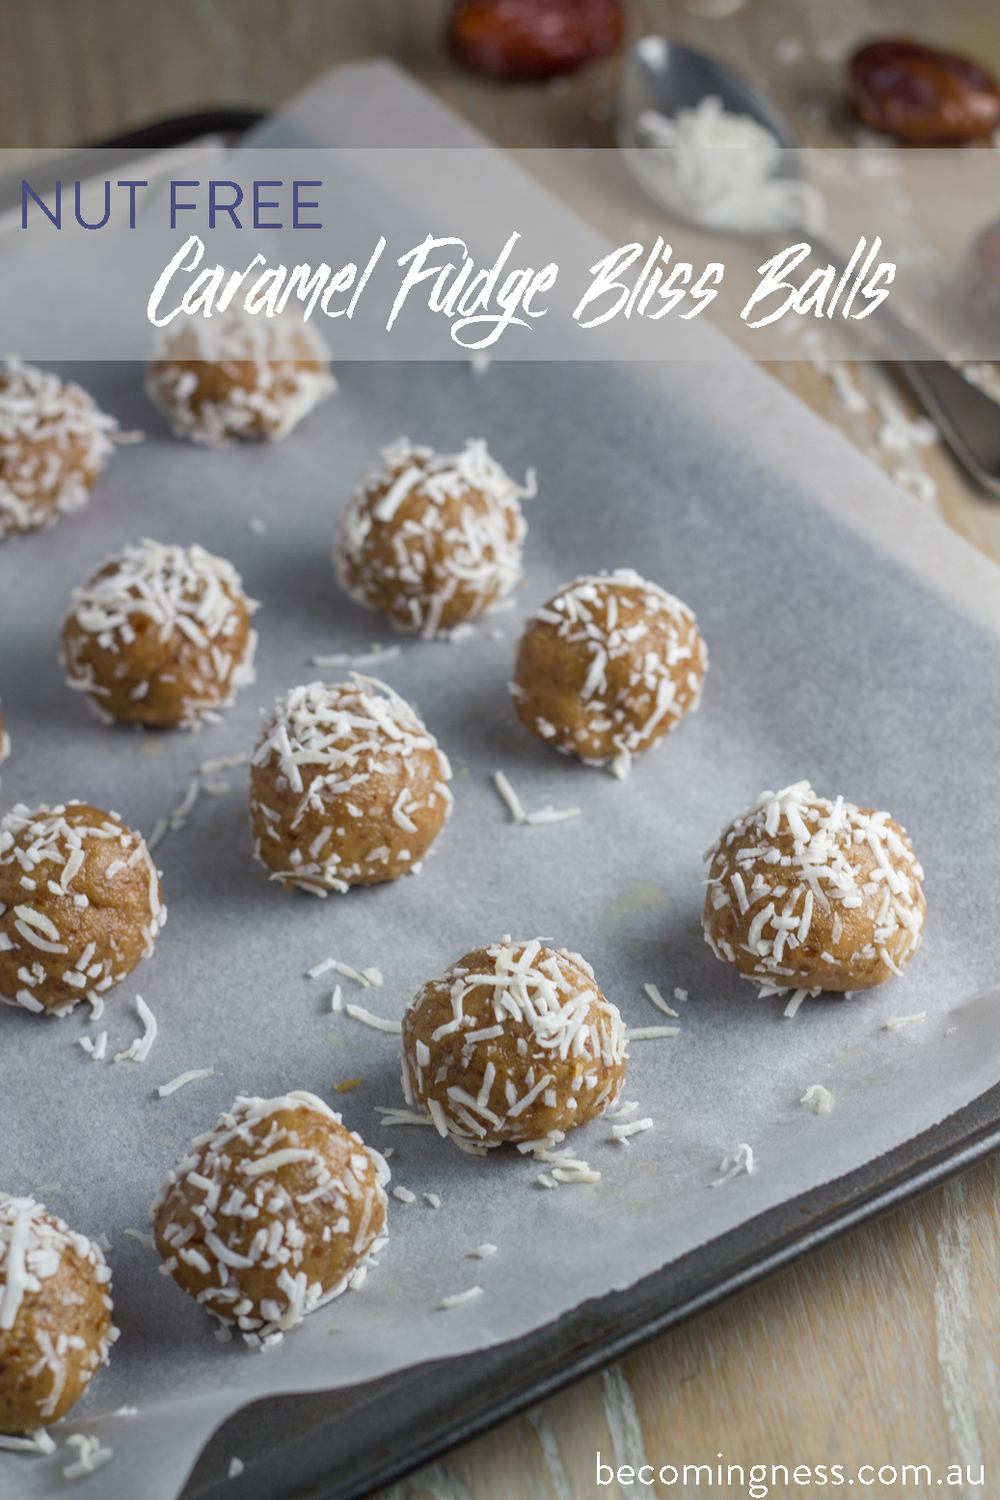 nut-free-caramel-fudge-bliss-balls